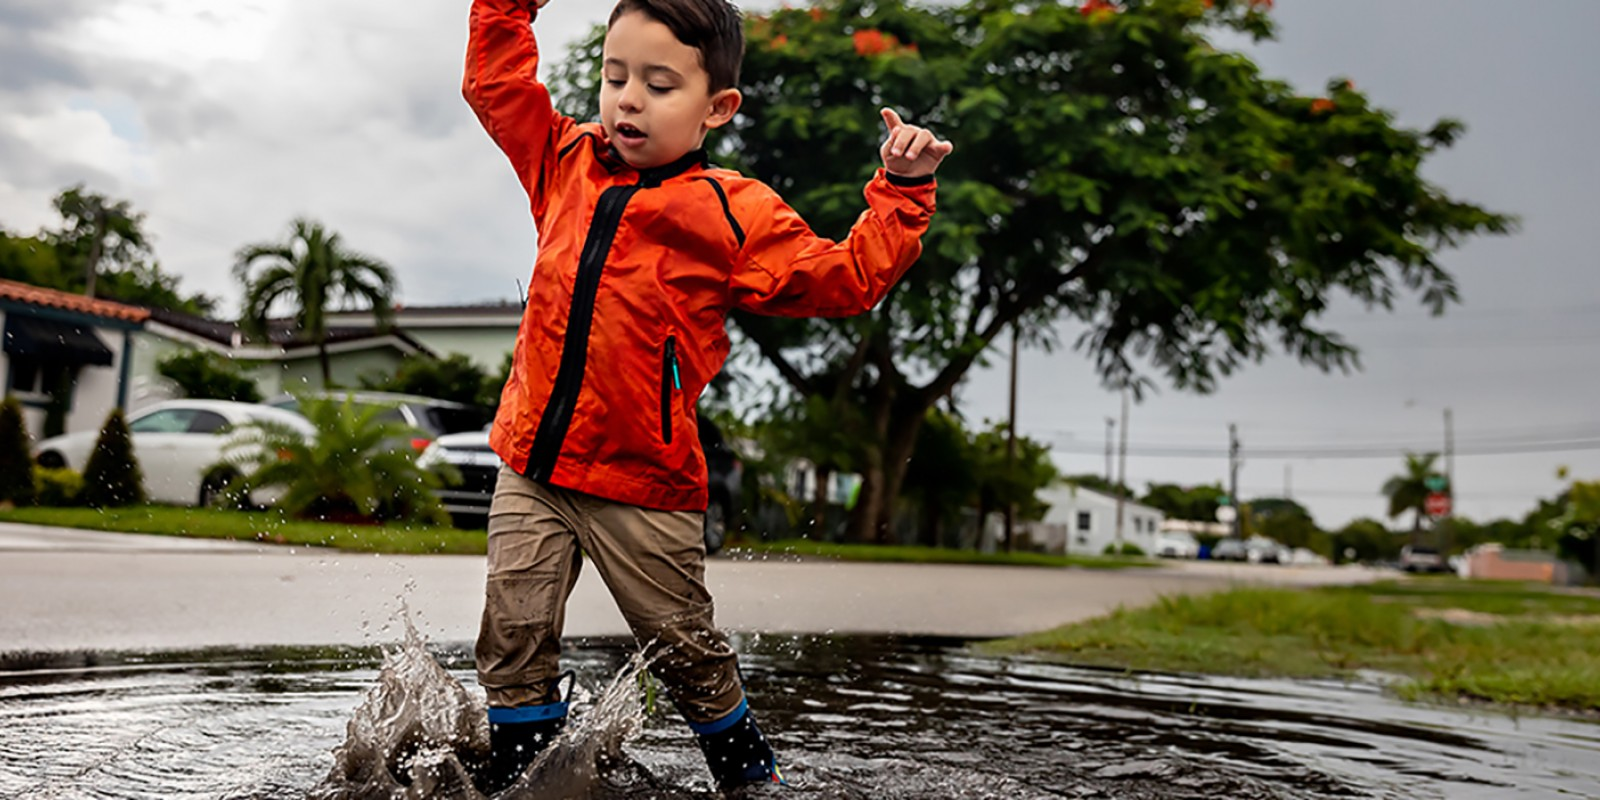 boy playing in puddle image